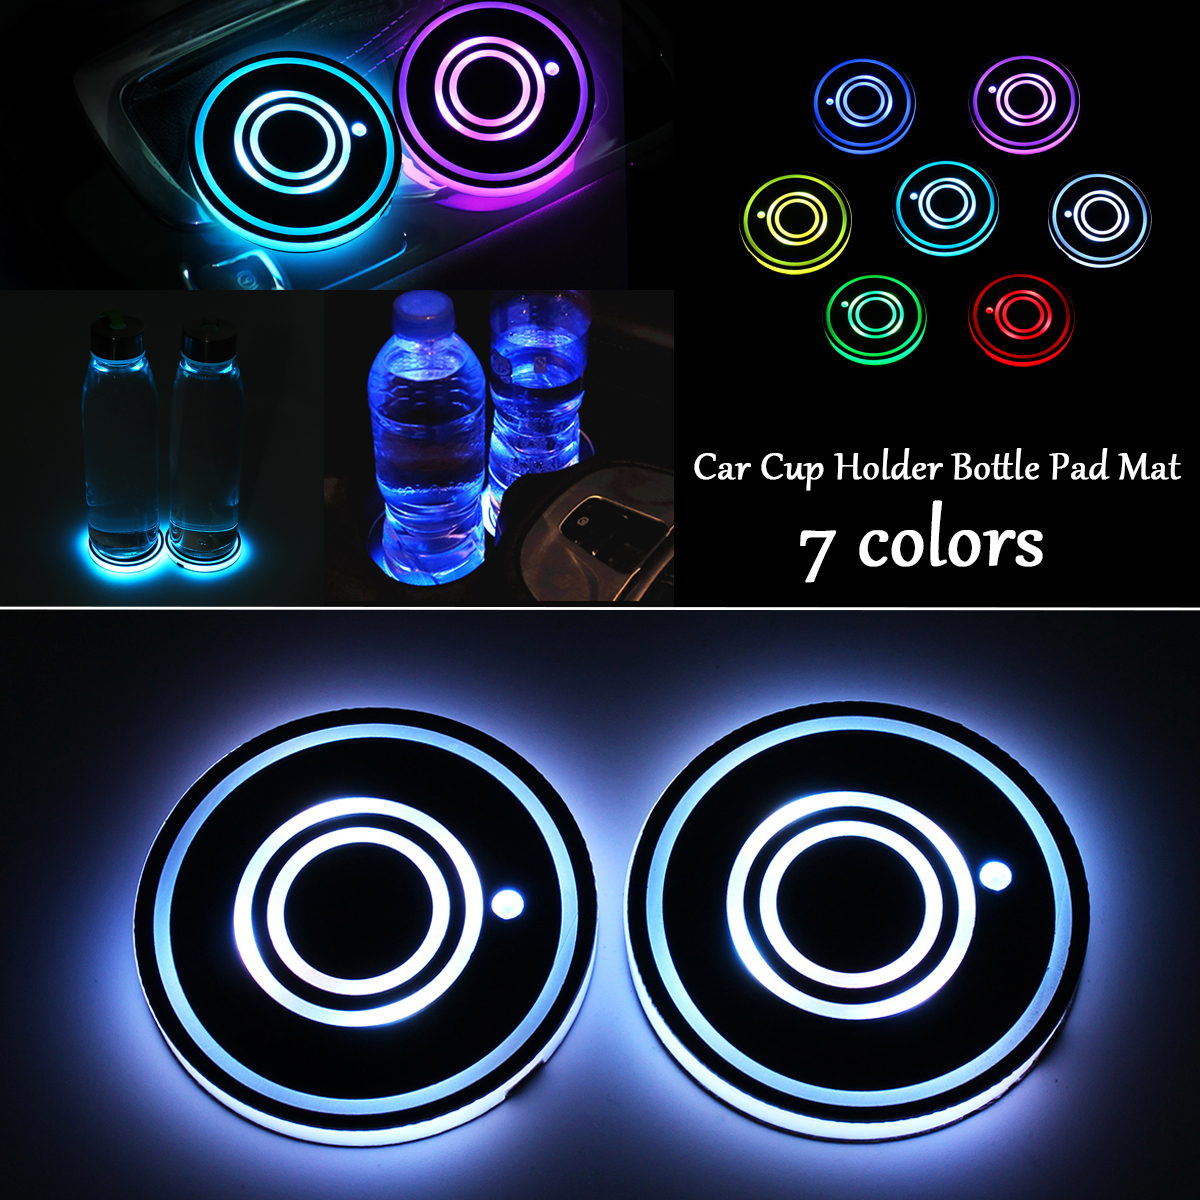 7 Colors Universal Car Cup Holder Bottom Mat Water Drinking Holder Organizer Pad USB LED Sensor